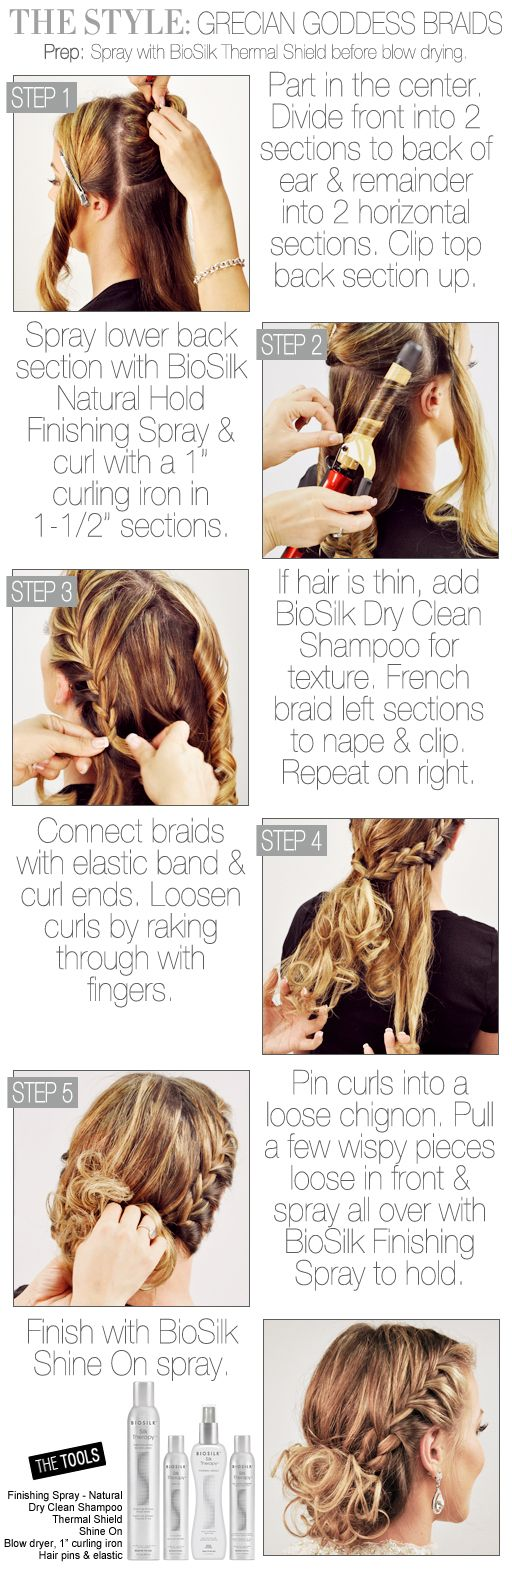 Hair How-To: Grecian Goddess Braided Updo #CHITopPin